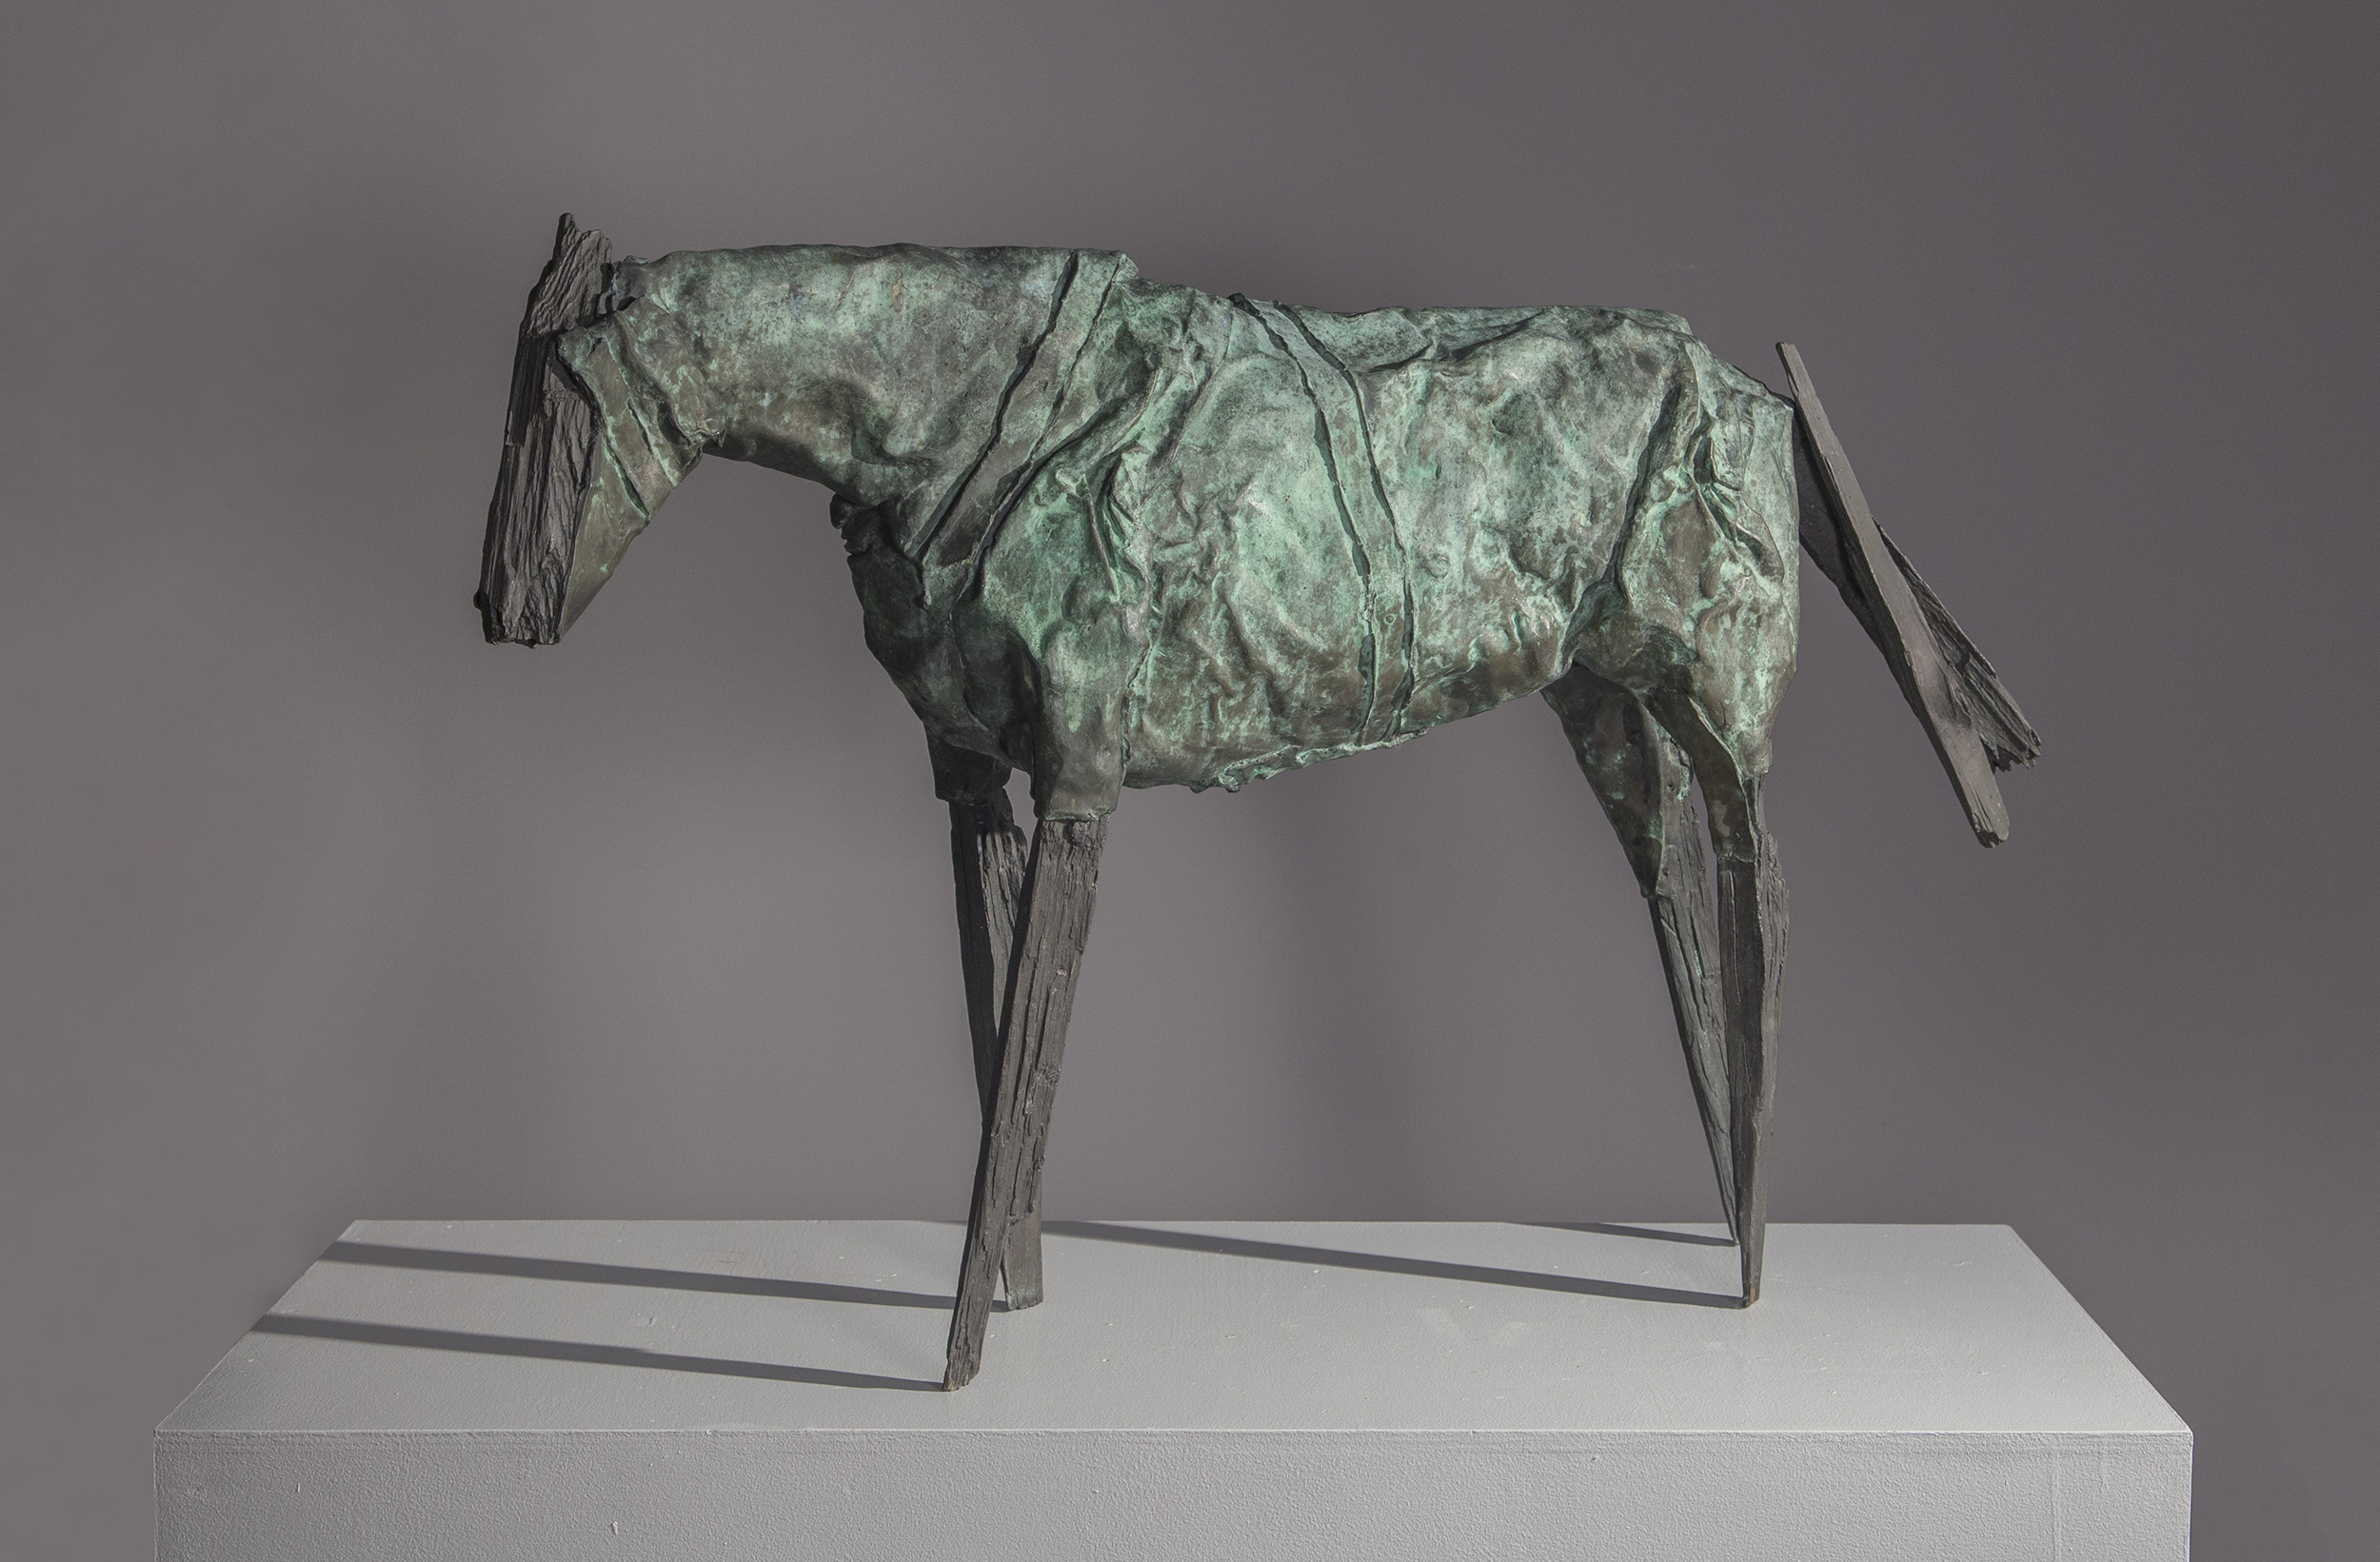 SOLD Untitled,   Bronze with green patina, 1985, 26 ⅜ x 41 ⅜ x 8 ¼ inches